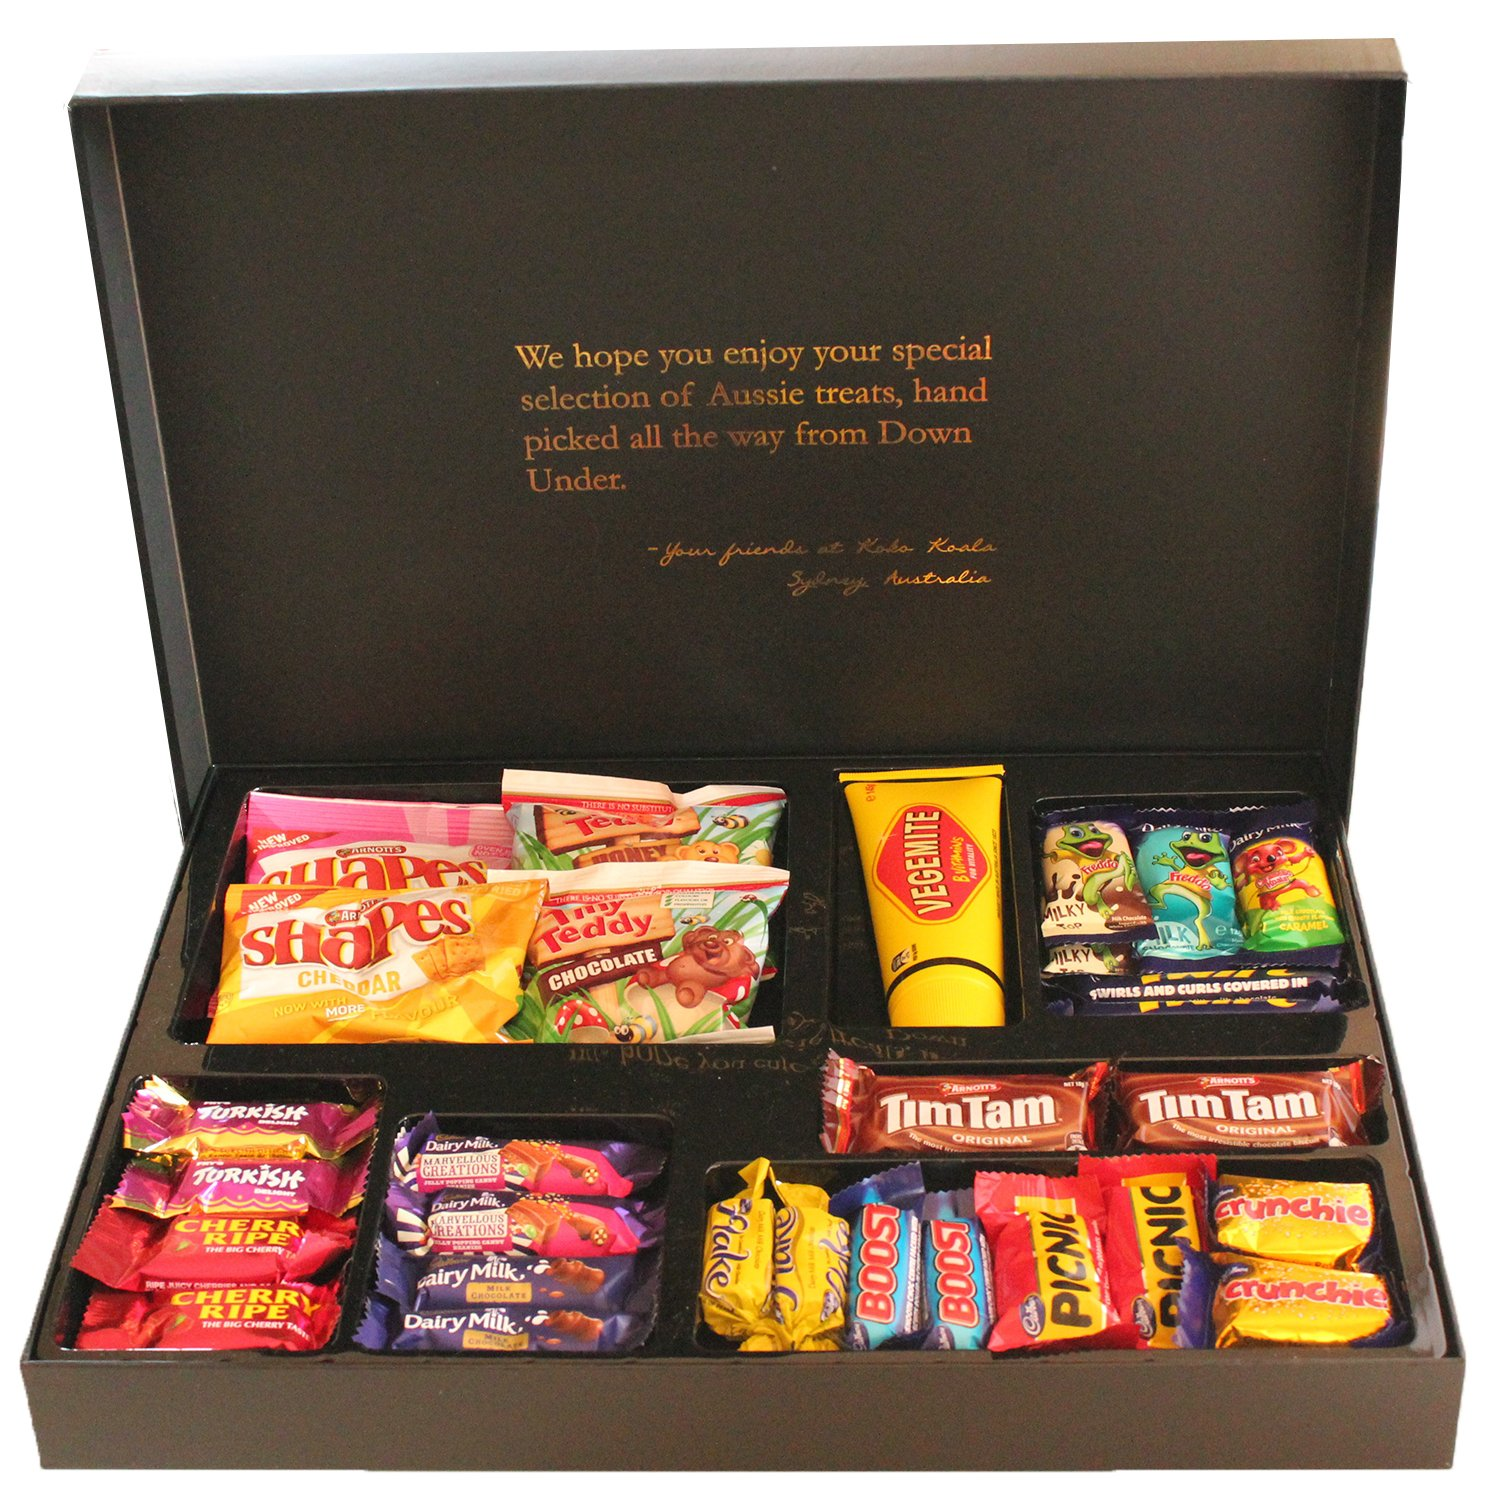 Amazon.com  Aussie Favorites Gourmet Gift Box | Vegemite Tim Tam Cookies Cadbury and More! | Koko Koala Australia  Grocery u0026 Gourmet Food  sc 1 st  Amazon.com & Amazon.com : Aussie Favorites Gourmet Gift Box | Vegemite Tim Tam ... Aboutintivar.Com